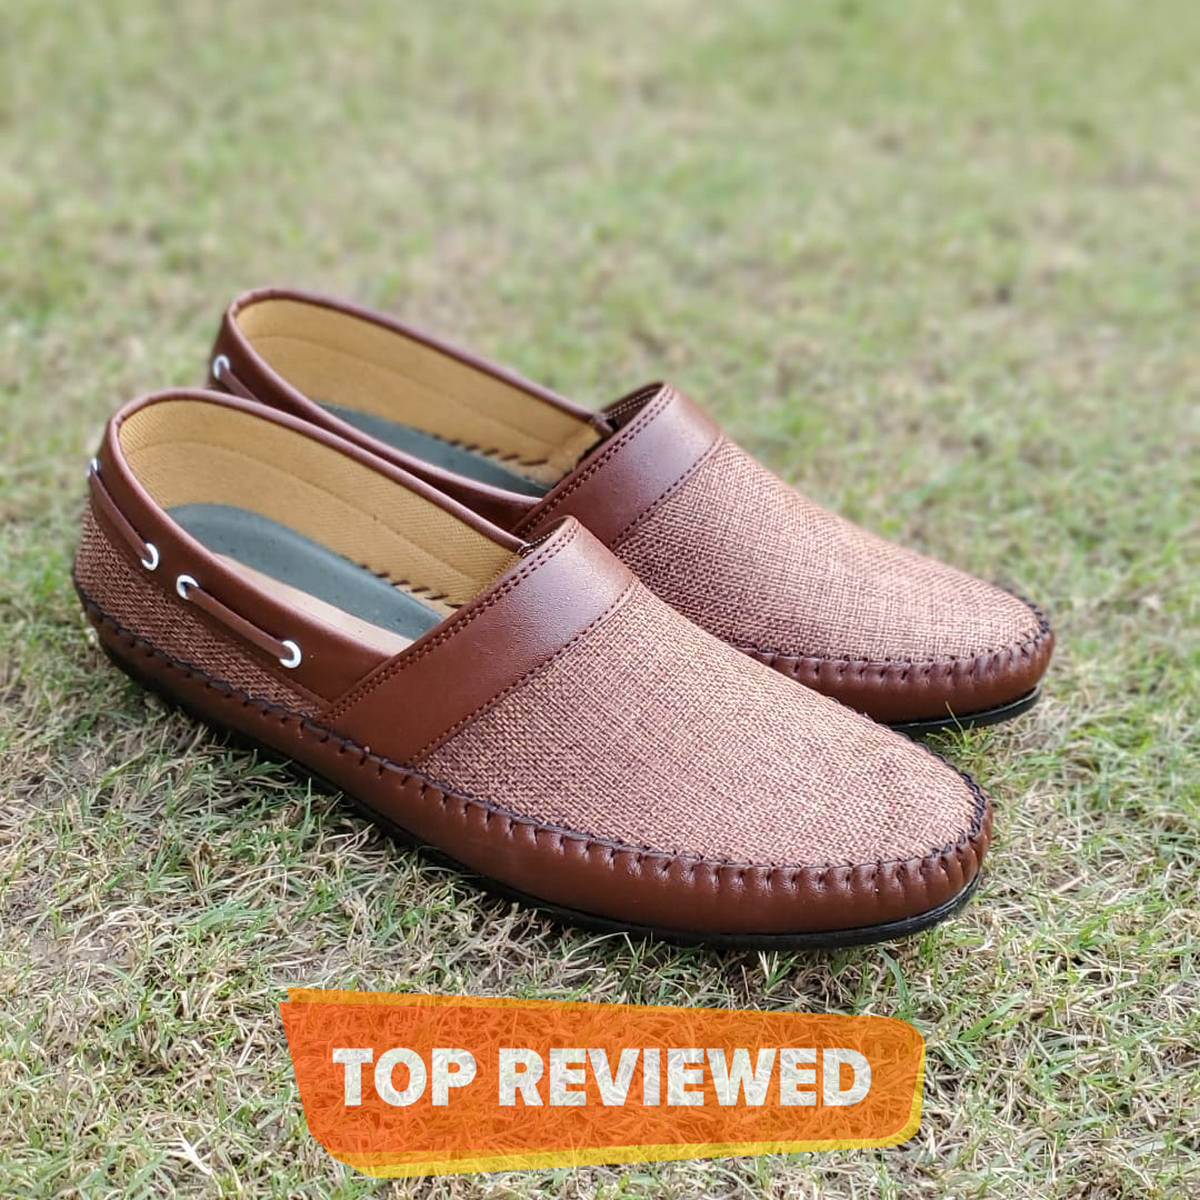 Sack Textured In Brown Synthetic Leather Loafer Shoes By Importia